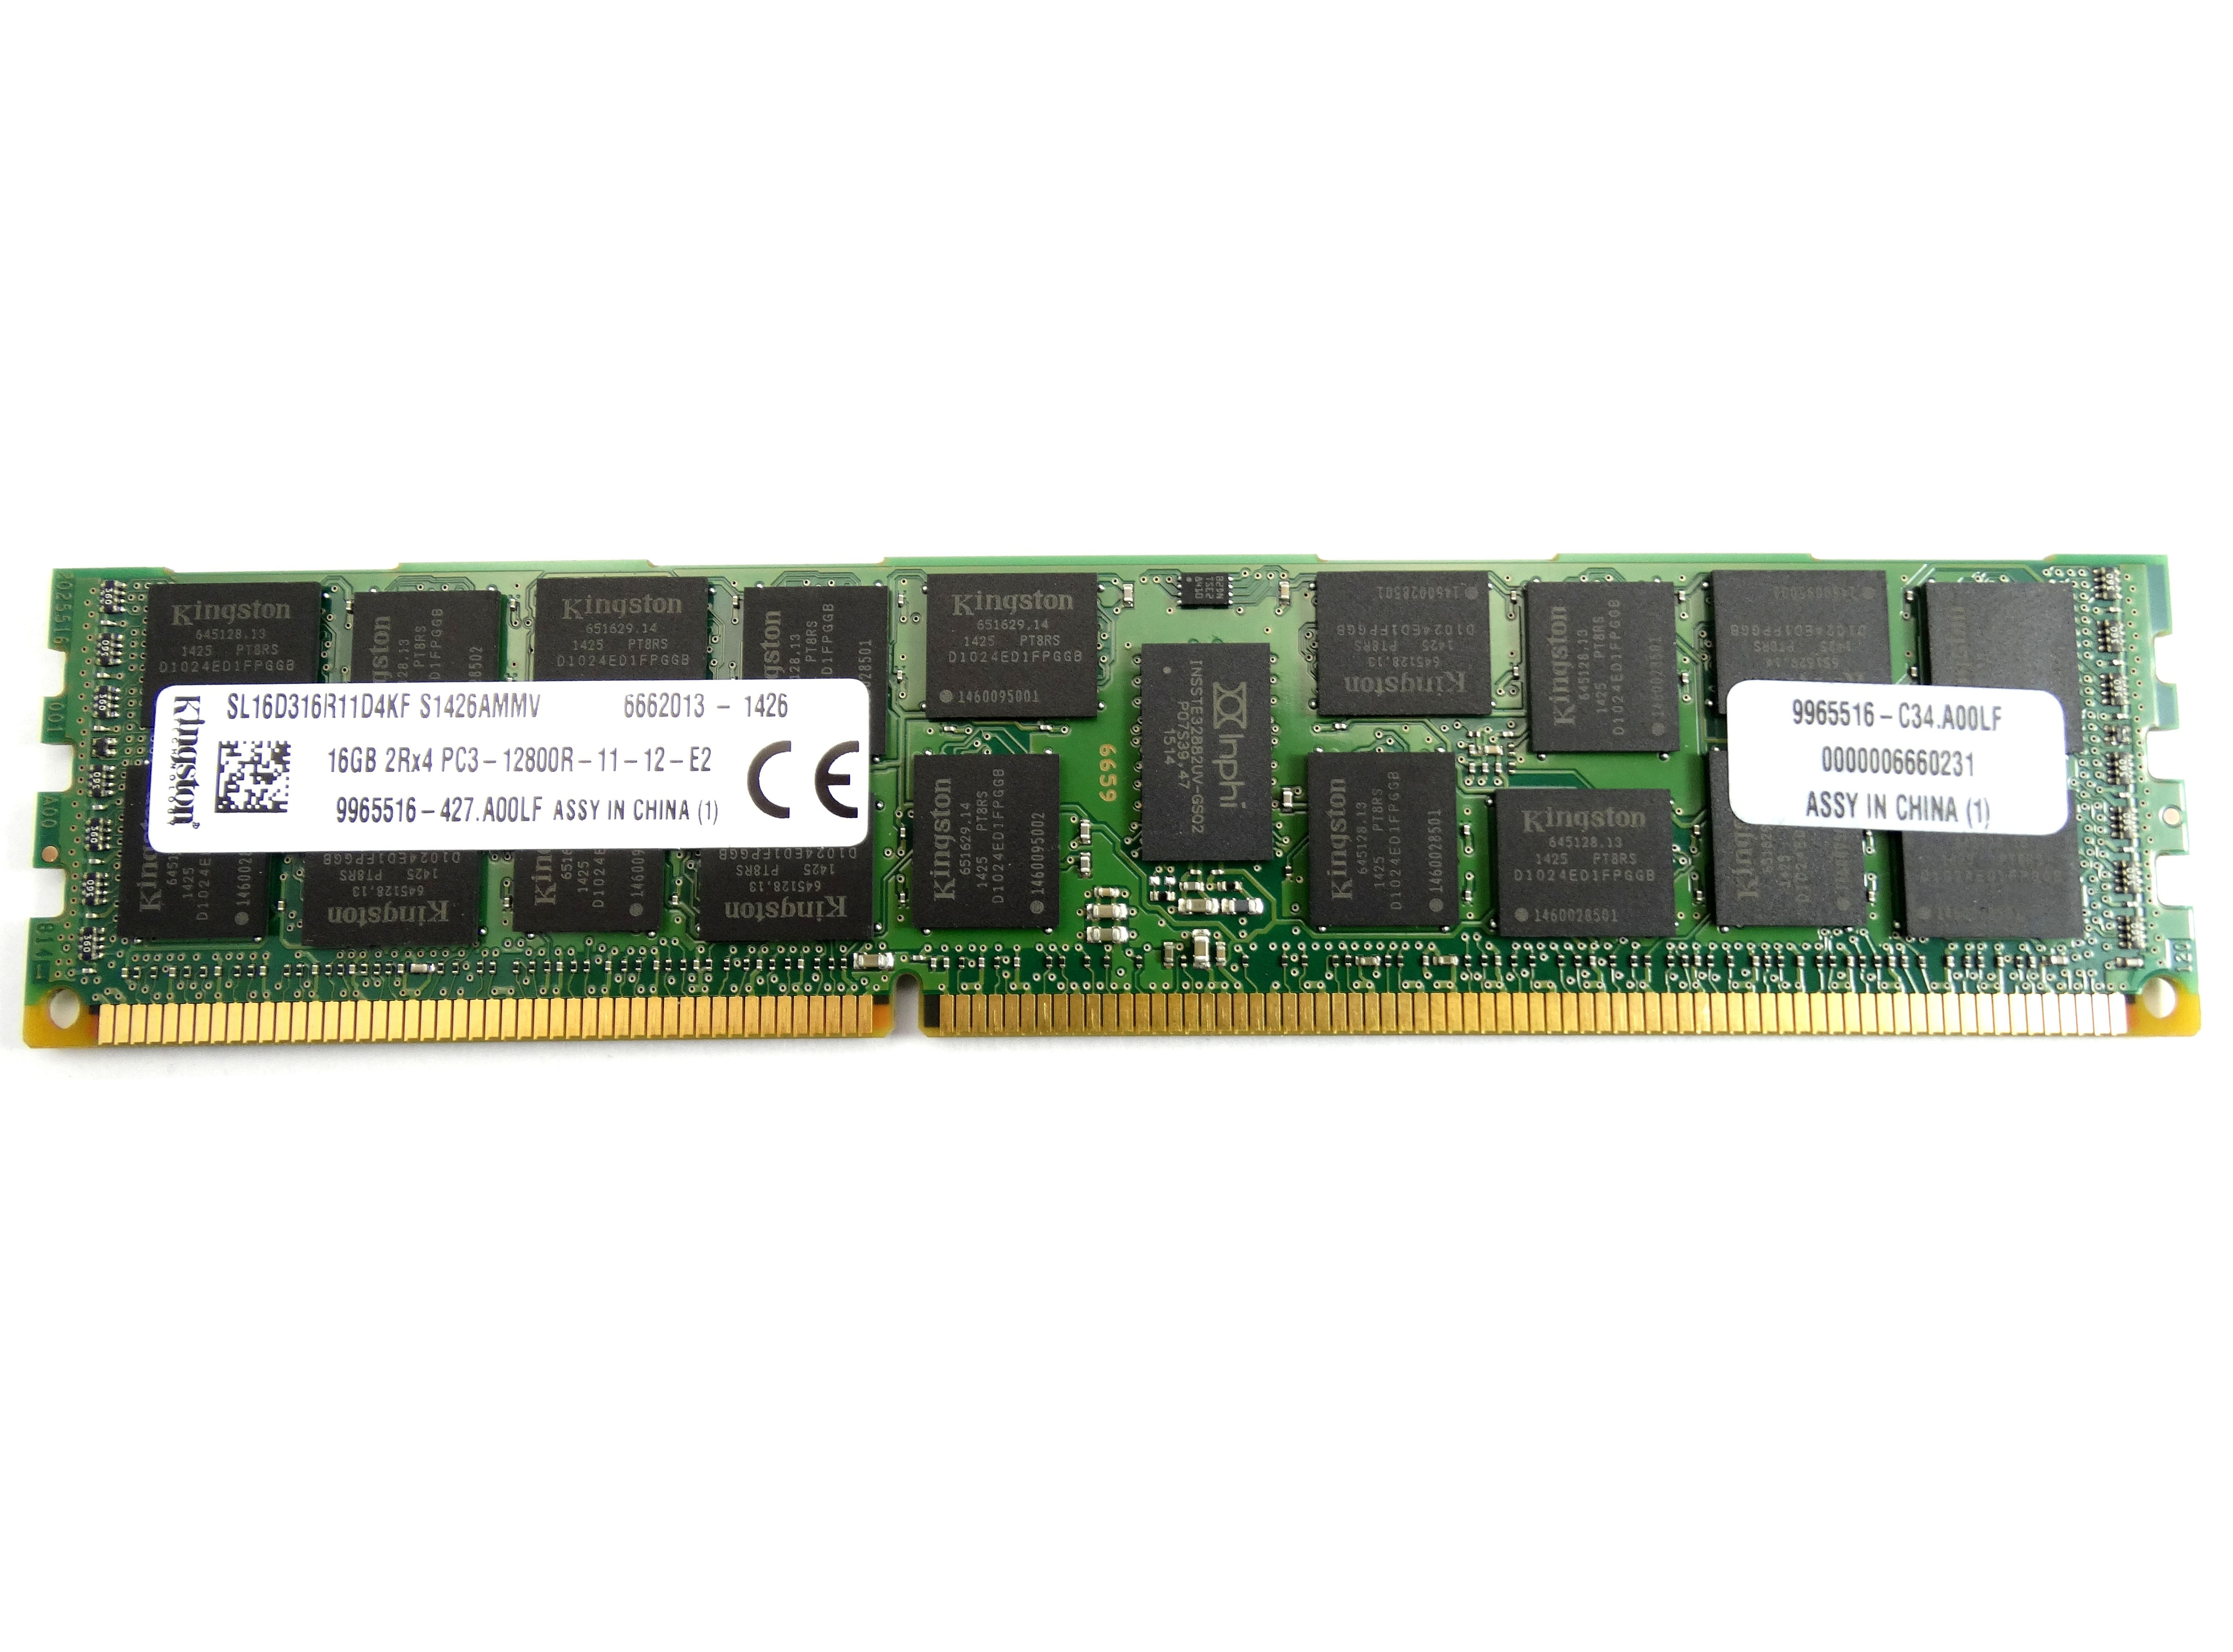 KINGSTON 16GB 2RX4 PC3-12800R DDR3 1600MHZ DUAL RANK ECC REGISTERED MEMORY (9965516-427.A00LF)